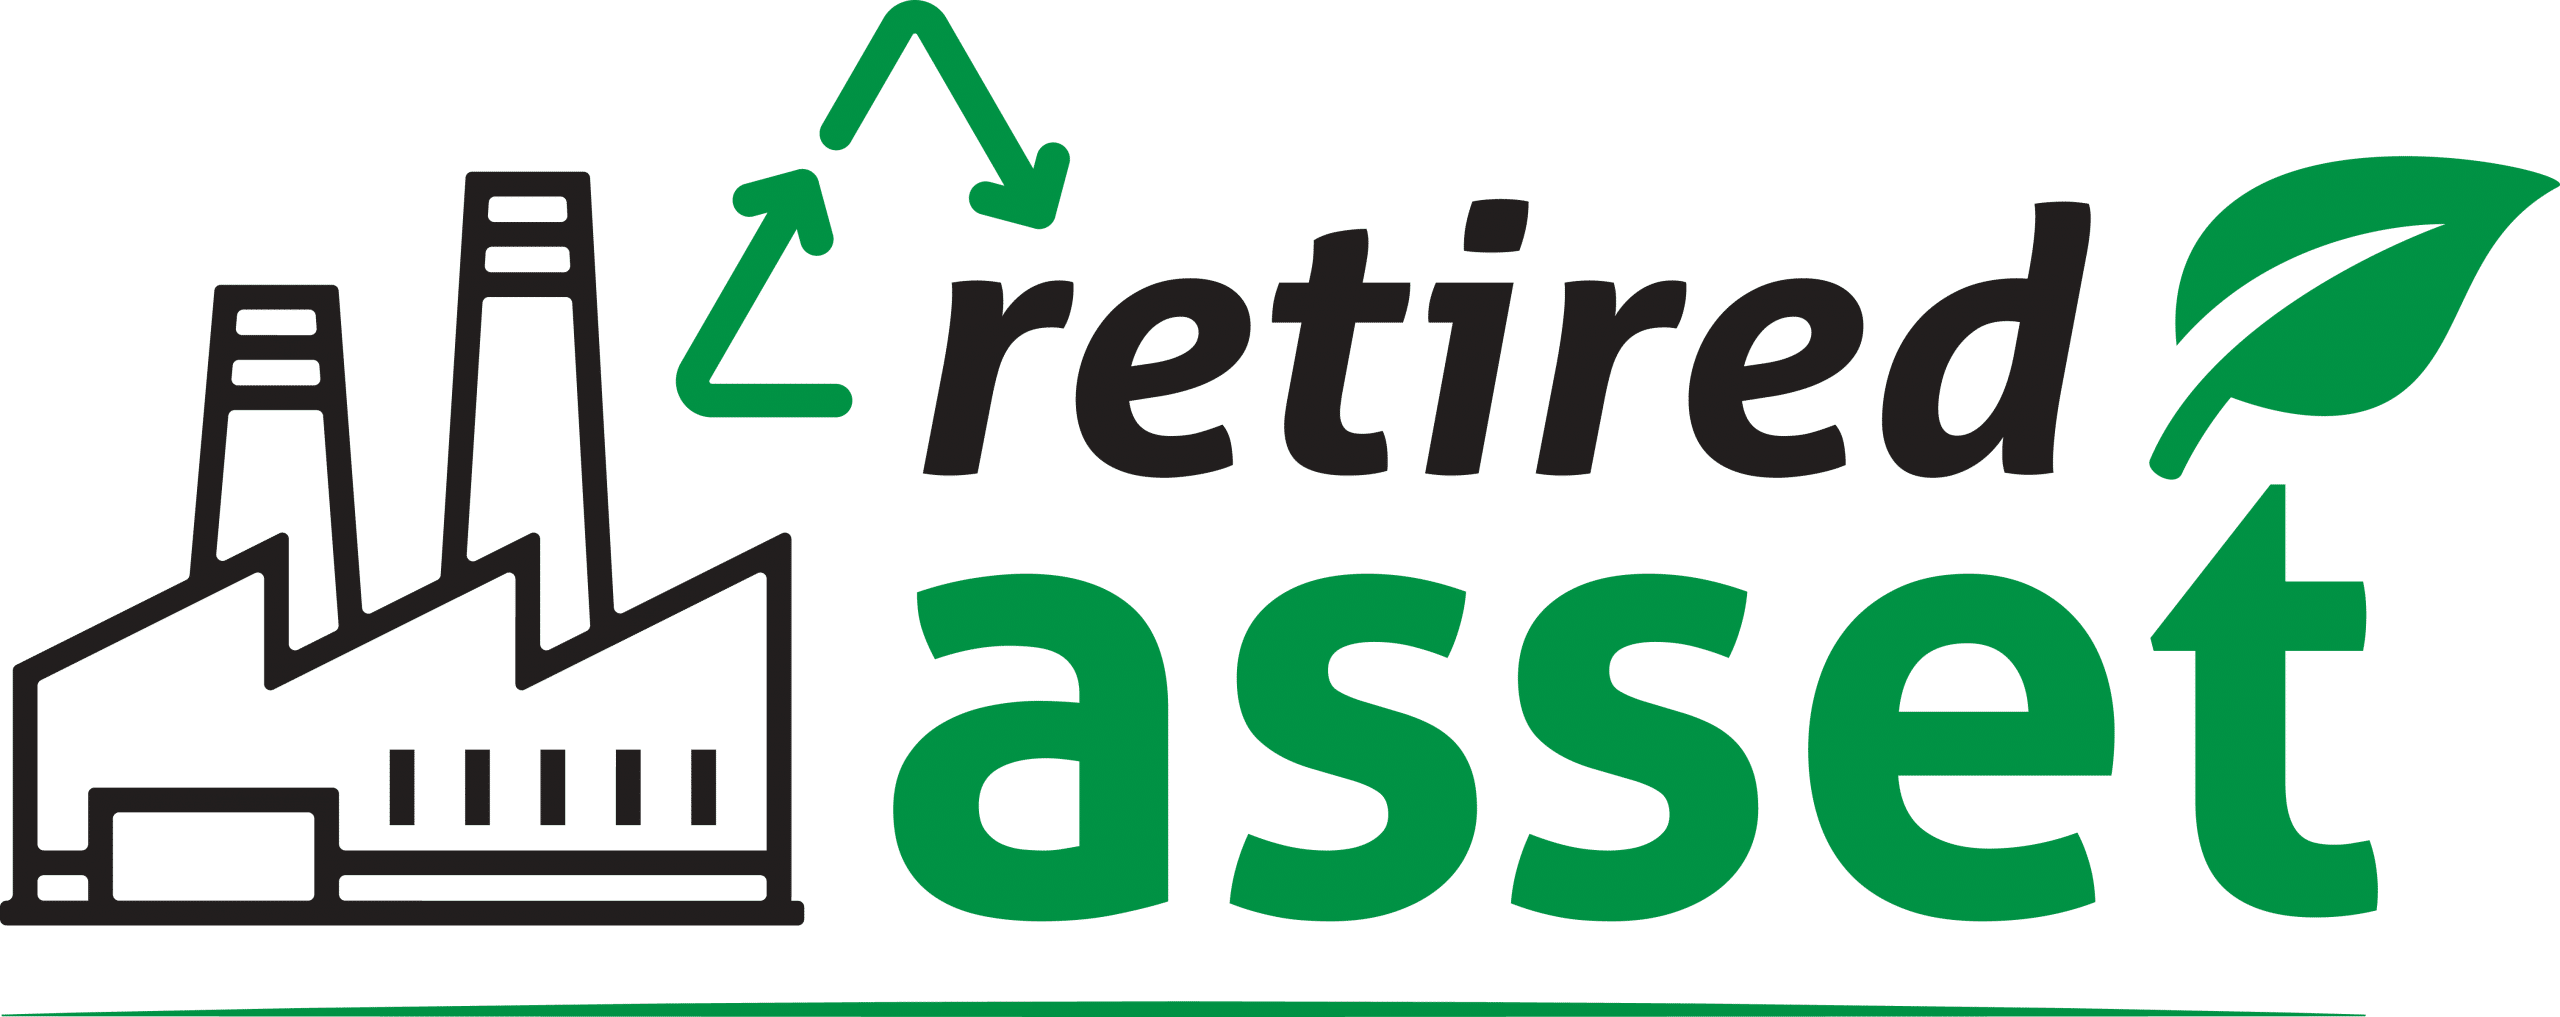 Retired Asset